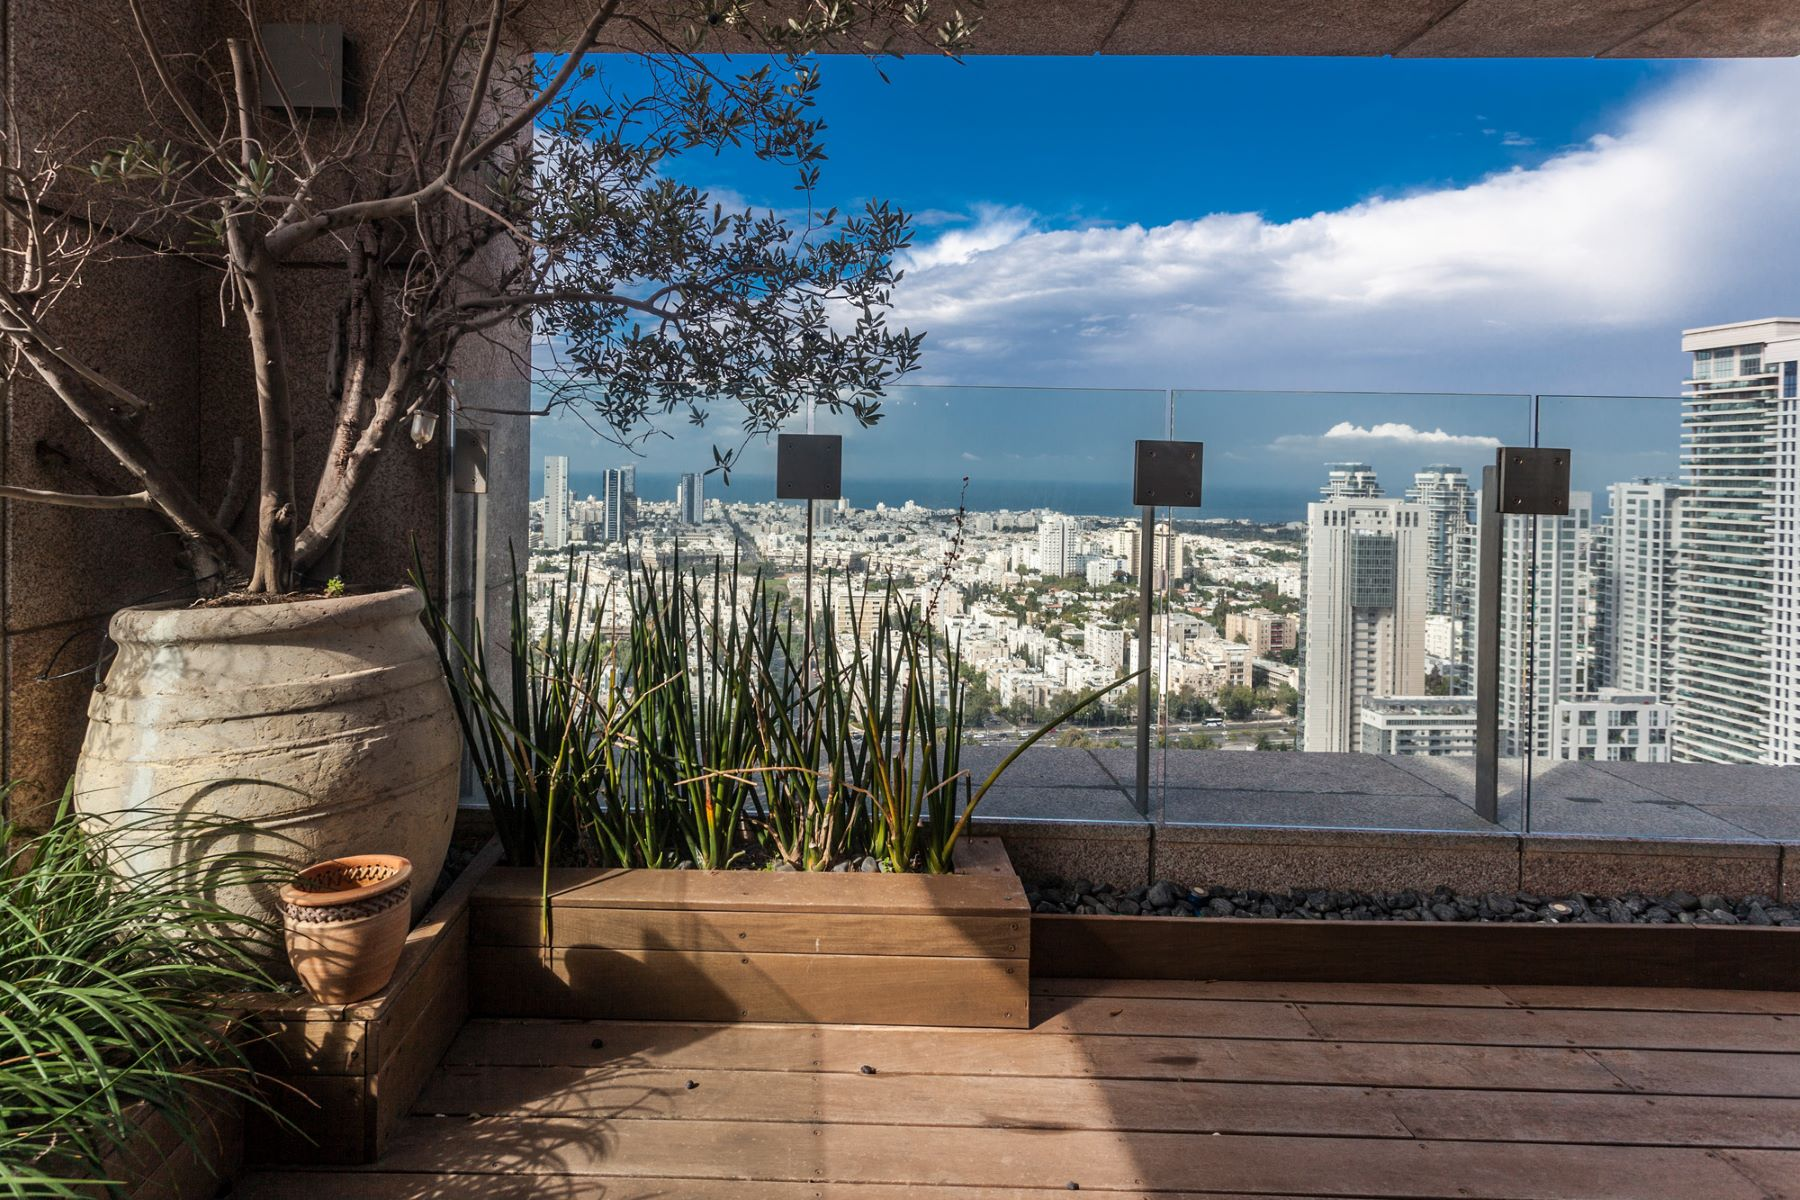 شقة للـ Sale في Elegant Duplex Penthouse with open Views of Tel Aviv and the Sea Ramat Gan, Israel